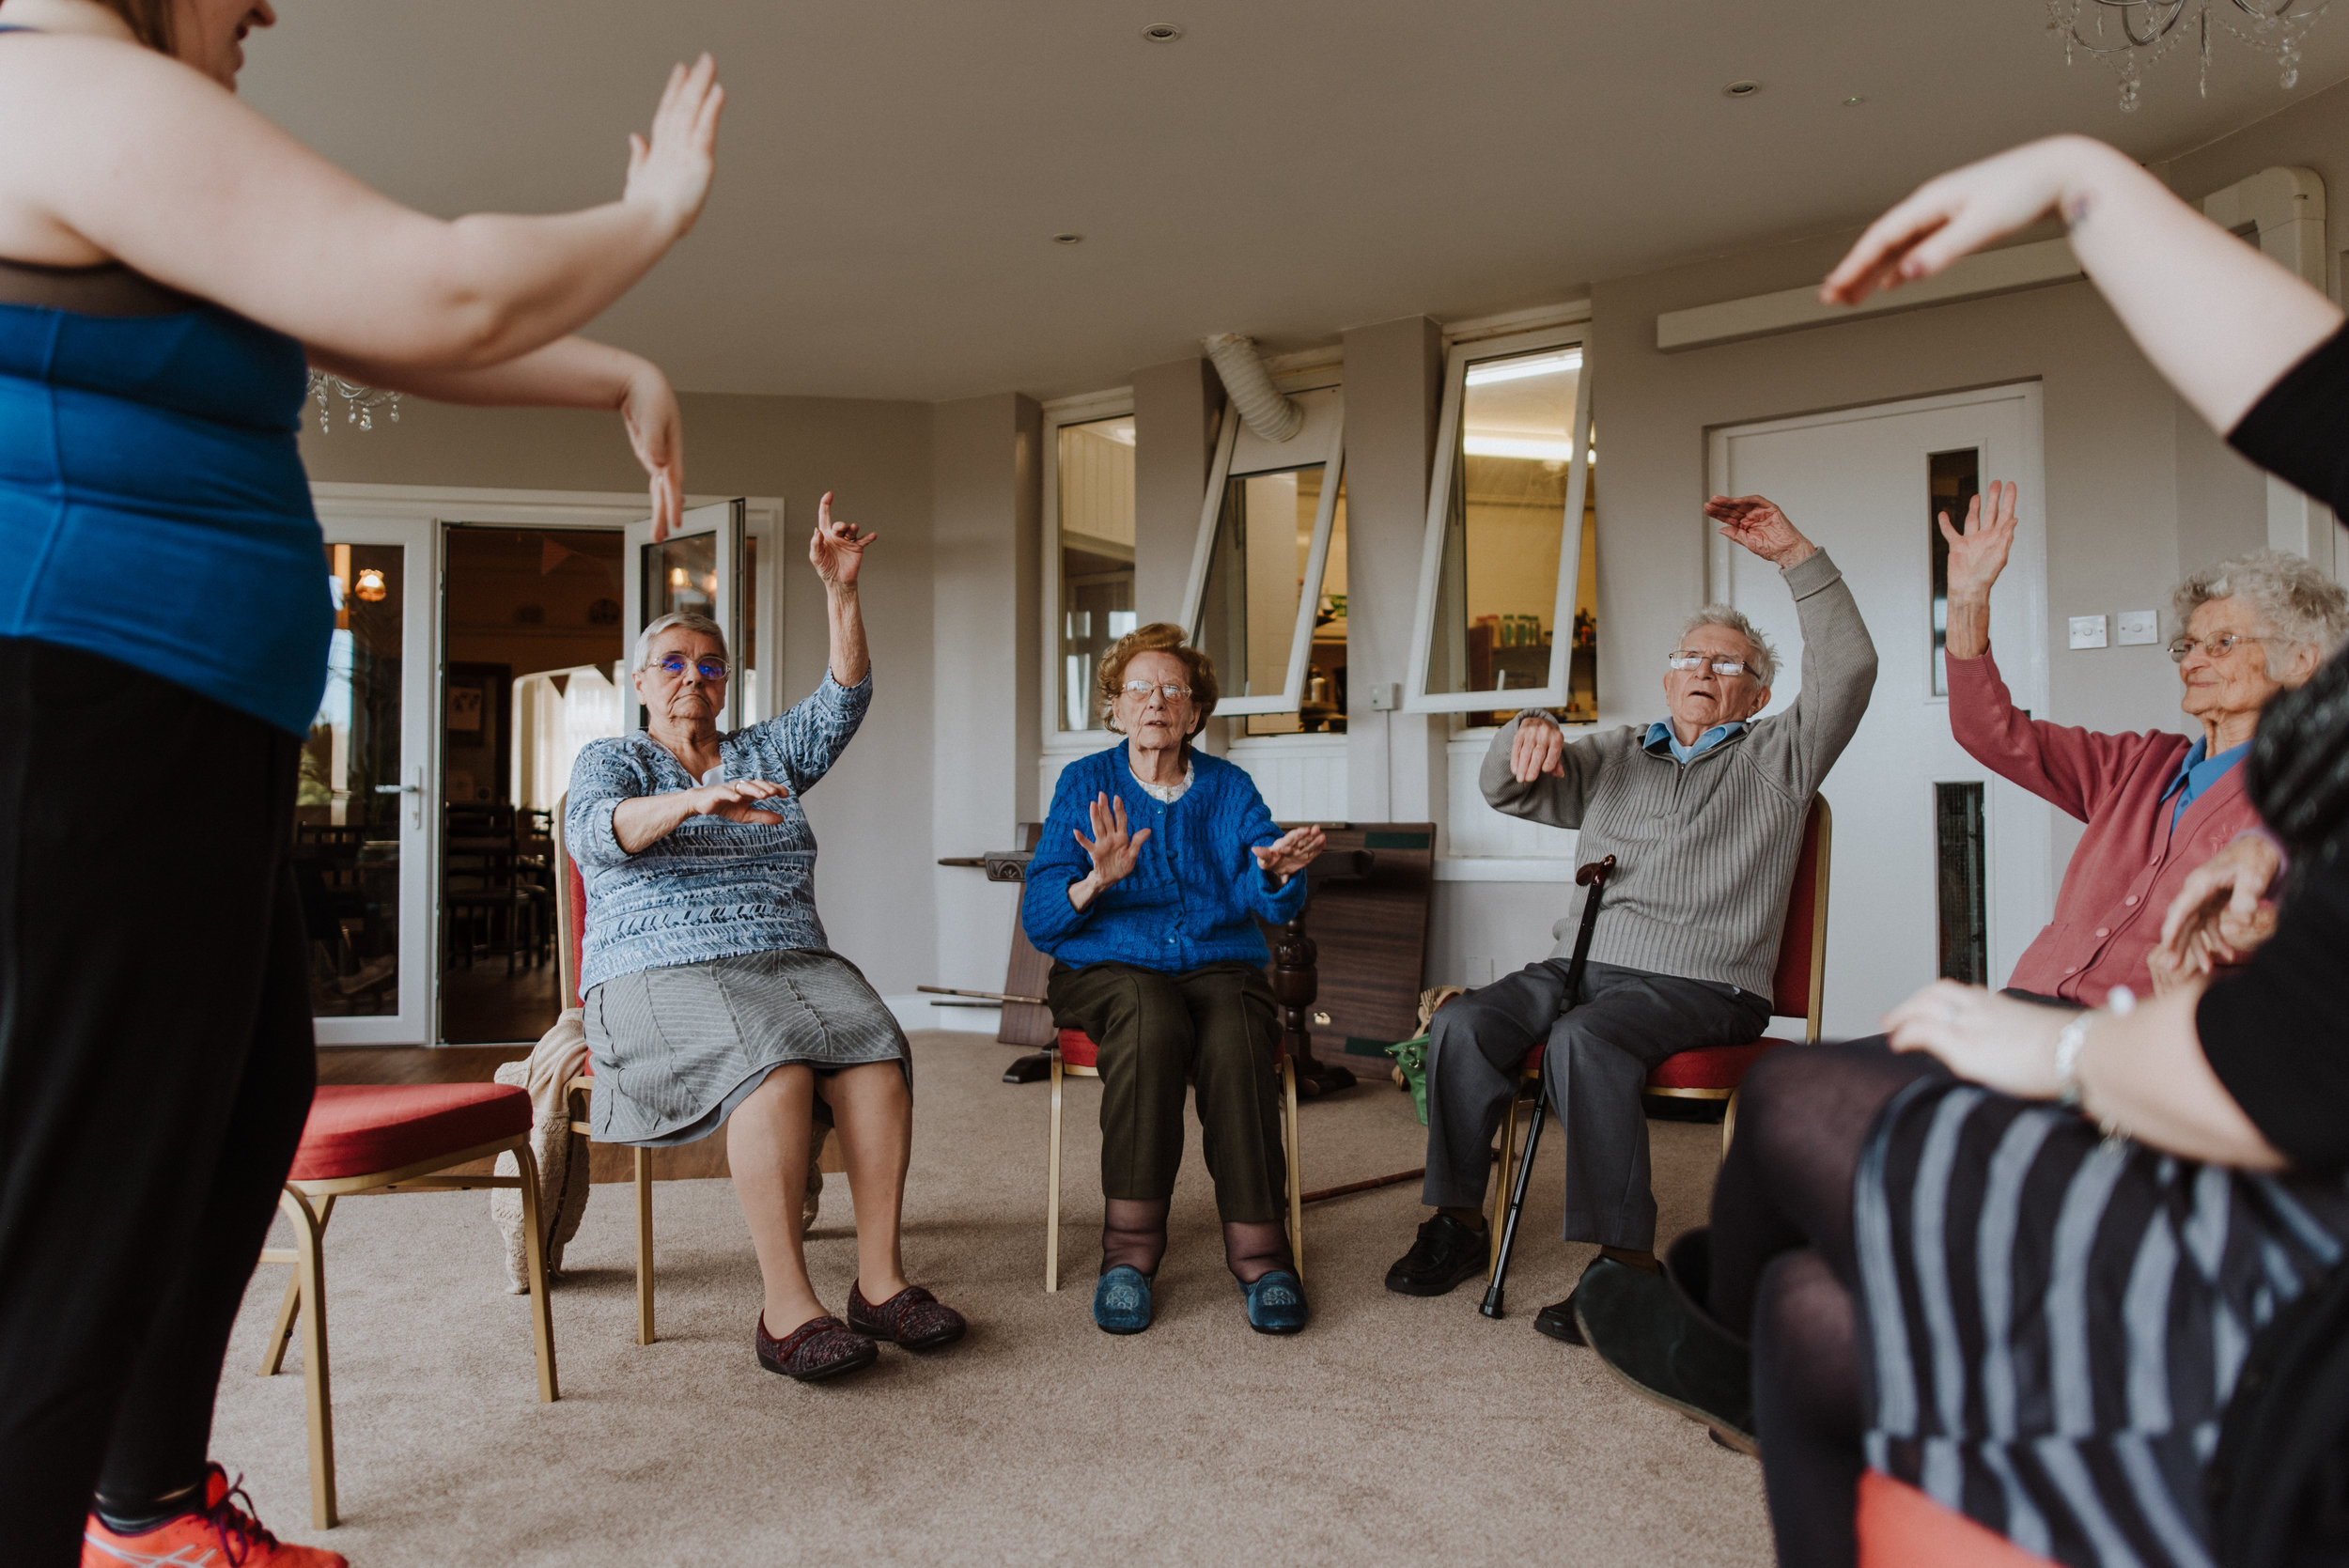 Residents rocking some disco moves! All Join The Circle Sessions are suitable for Dementia sufferers and those with impaired physical ability. Dance for everyone!